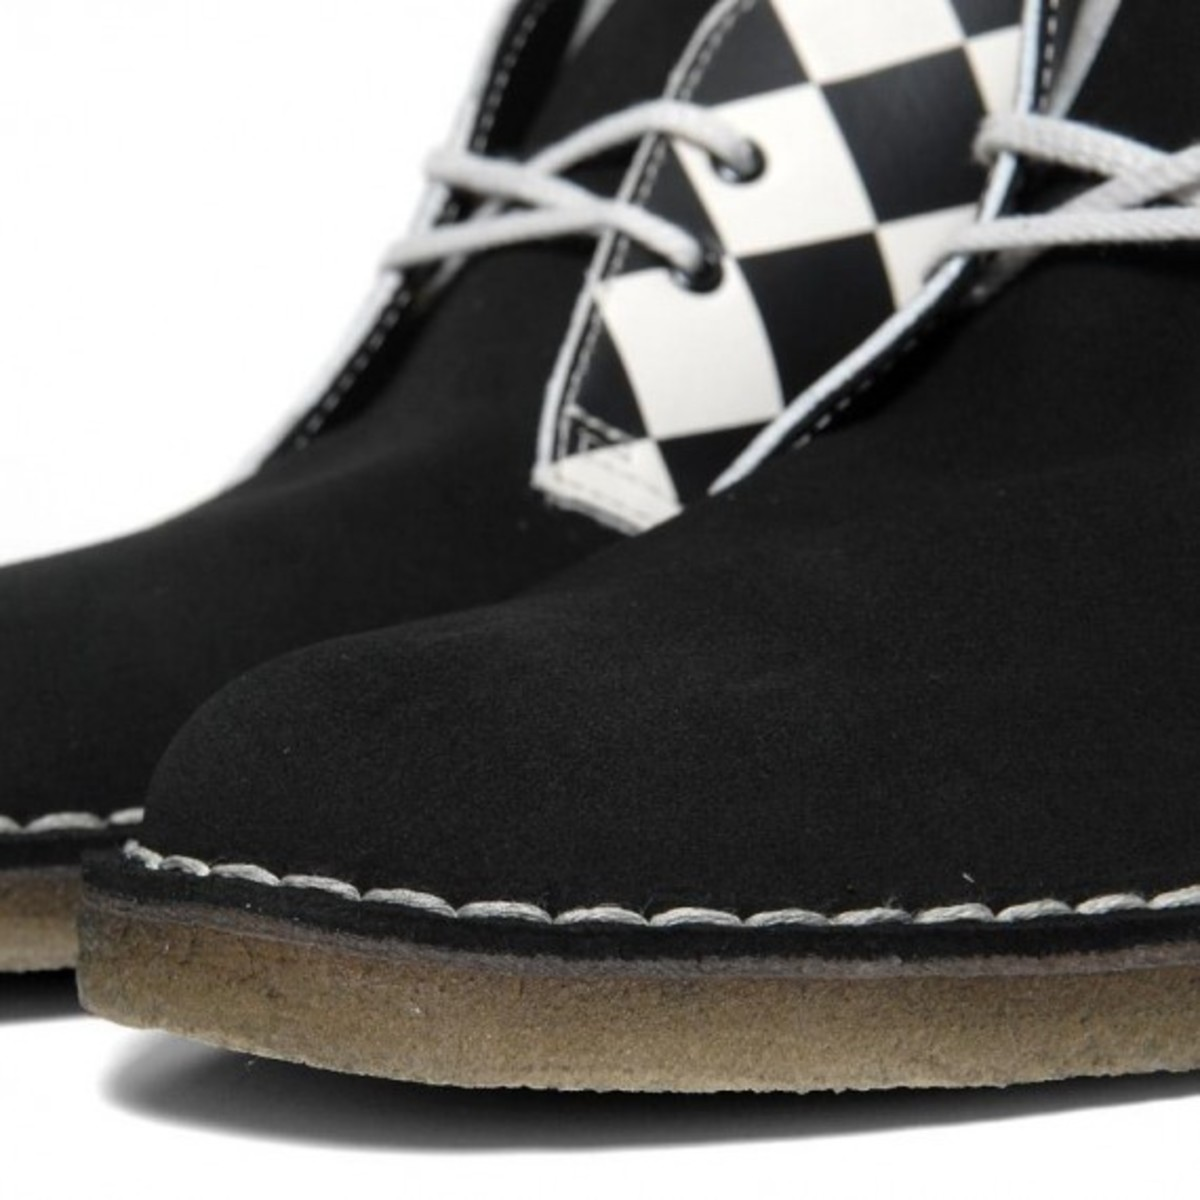 clarks-originals-desert-boot-ska-edition-05